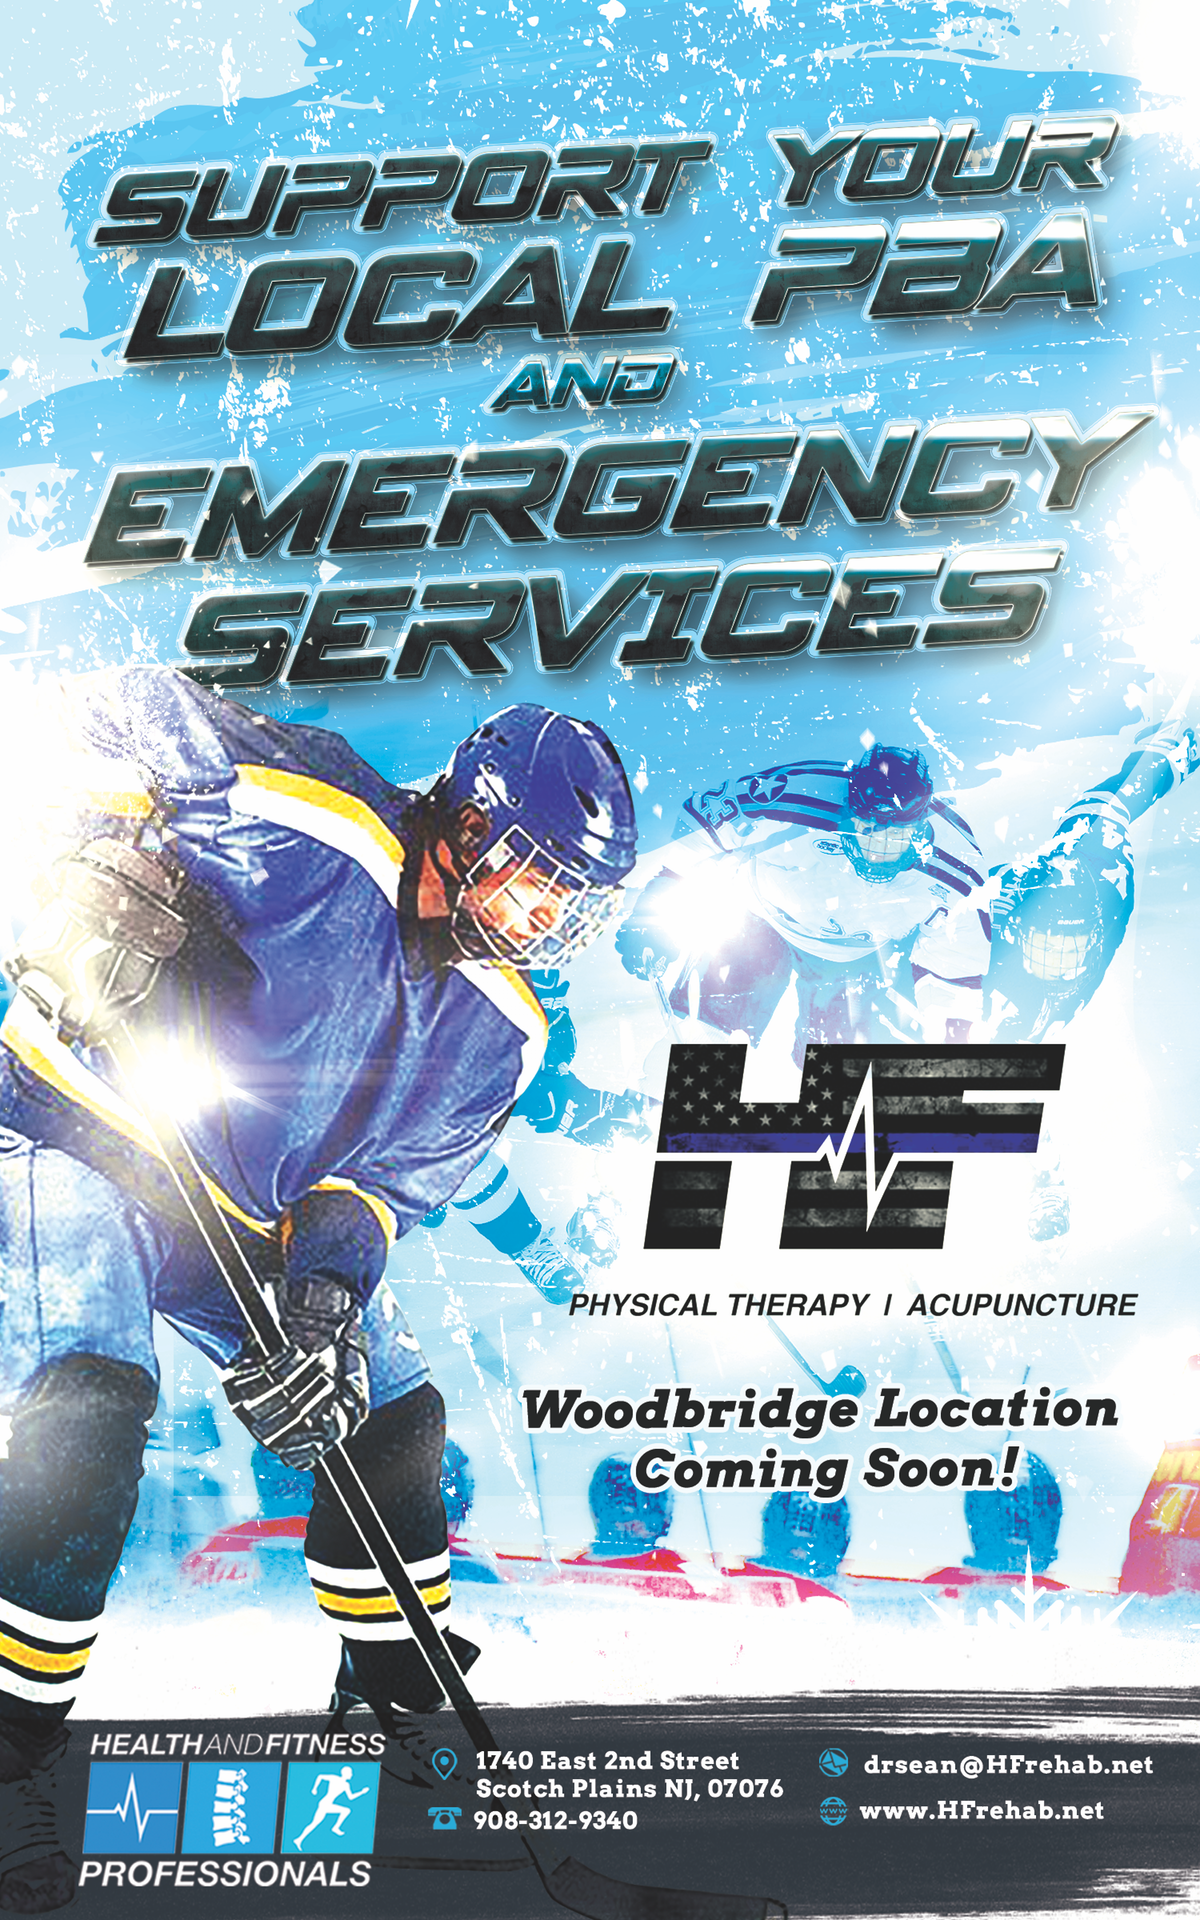 Ad for Police and Firefighter hockey game